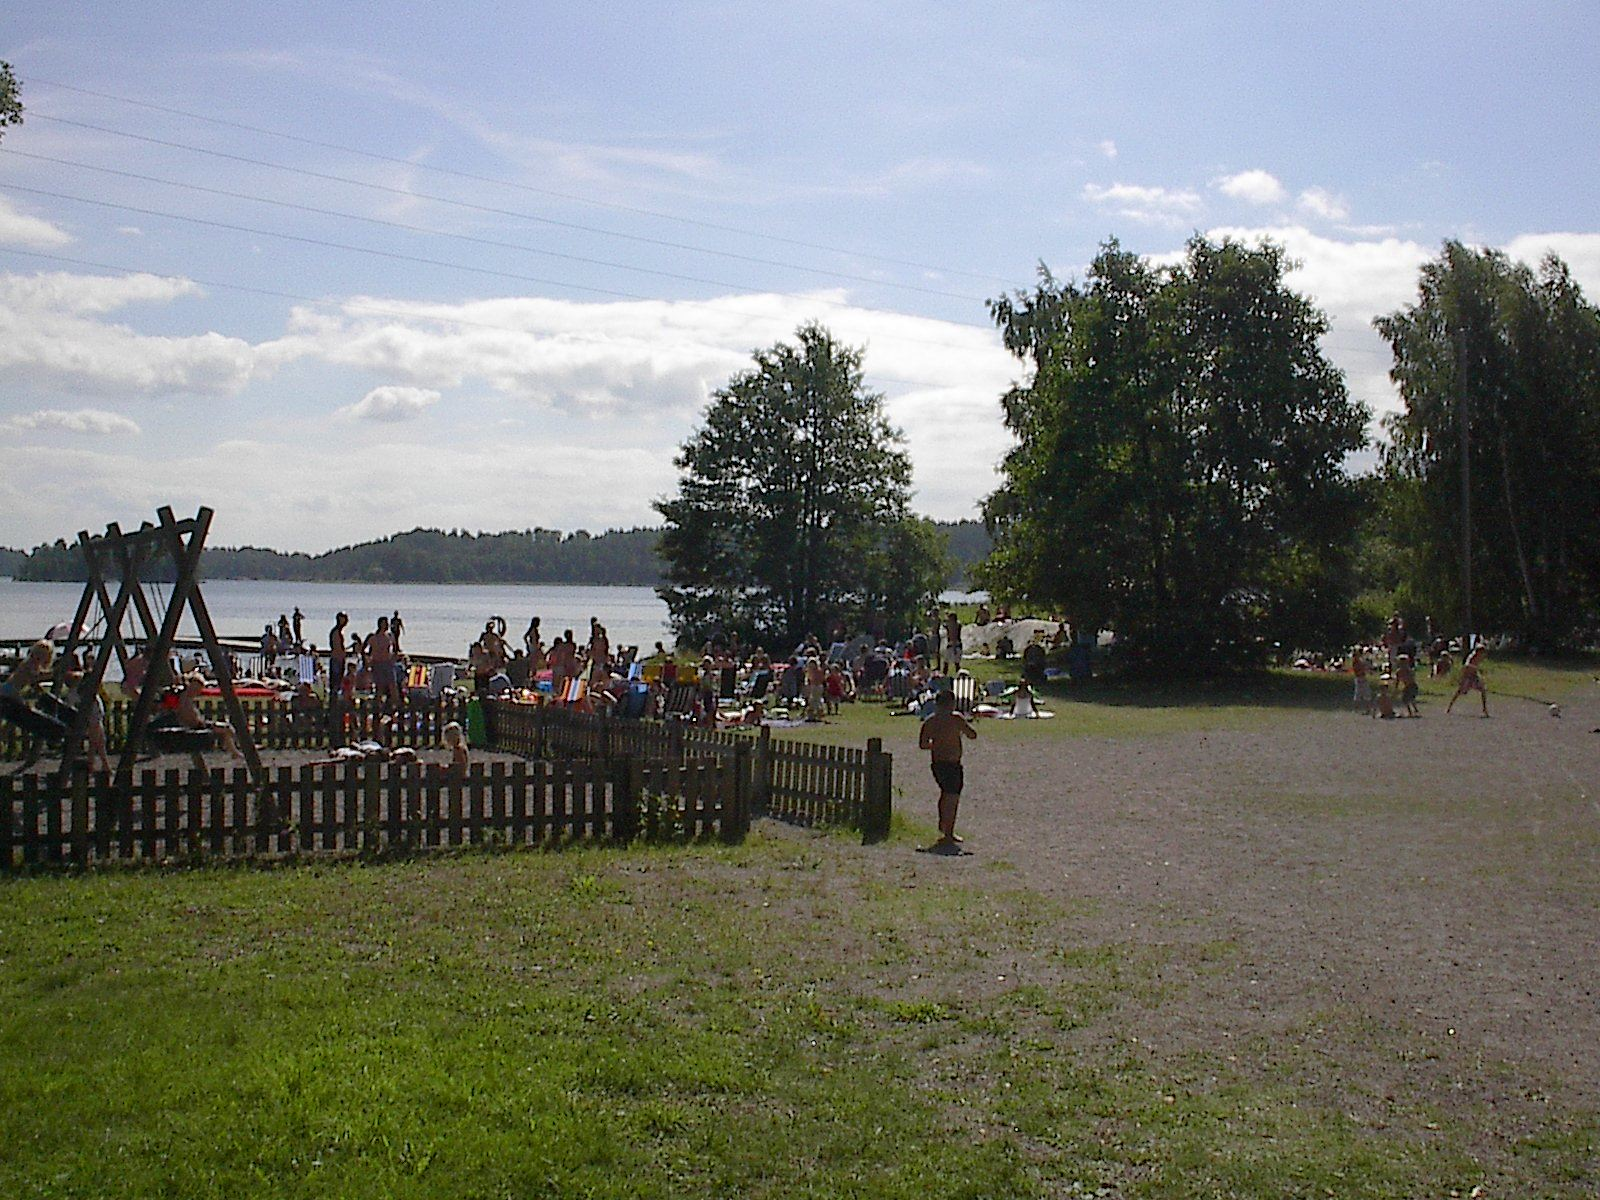 Björknäs Camping & Cottages